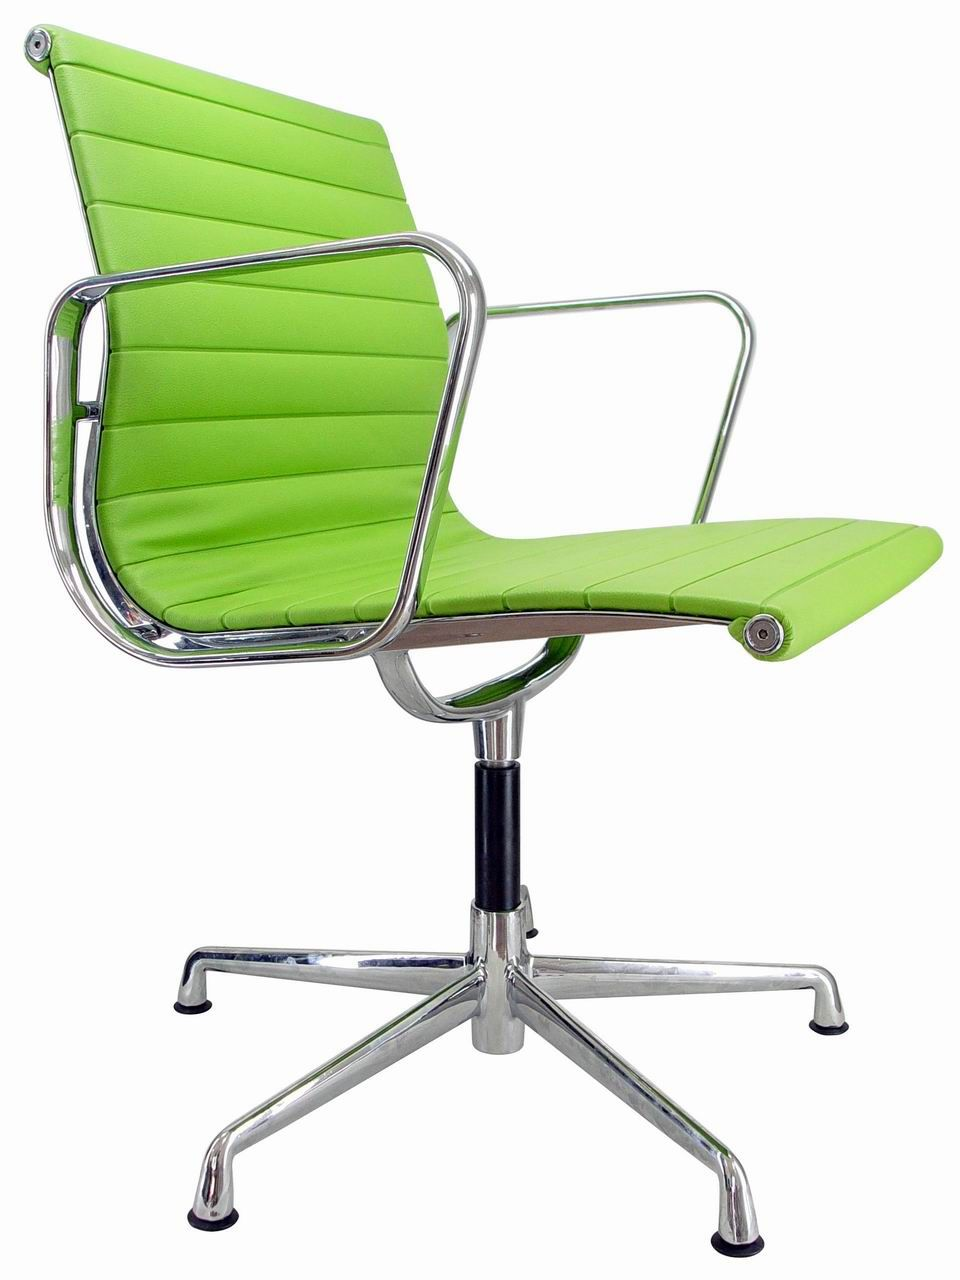 Image Result For Green Eames Office Chair